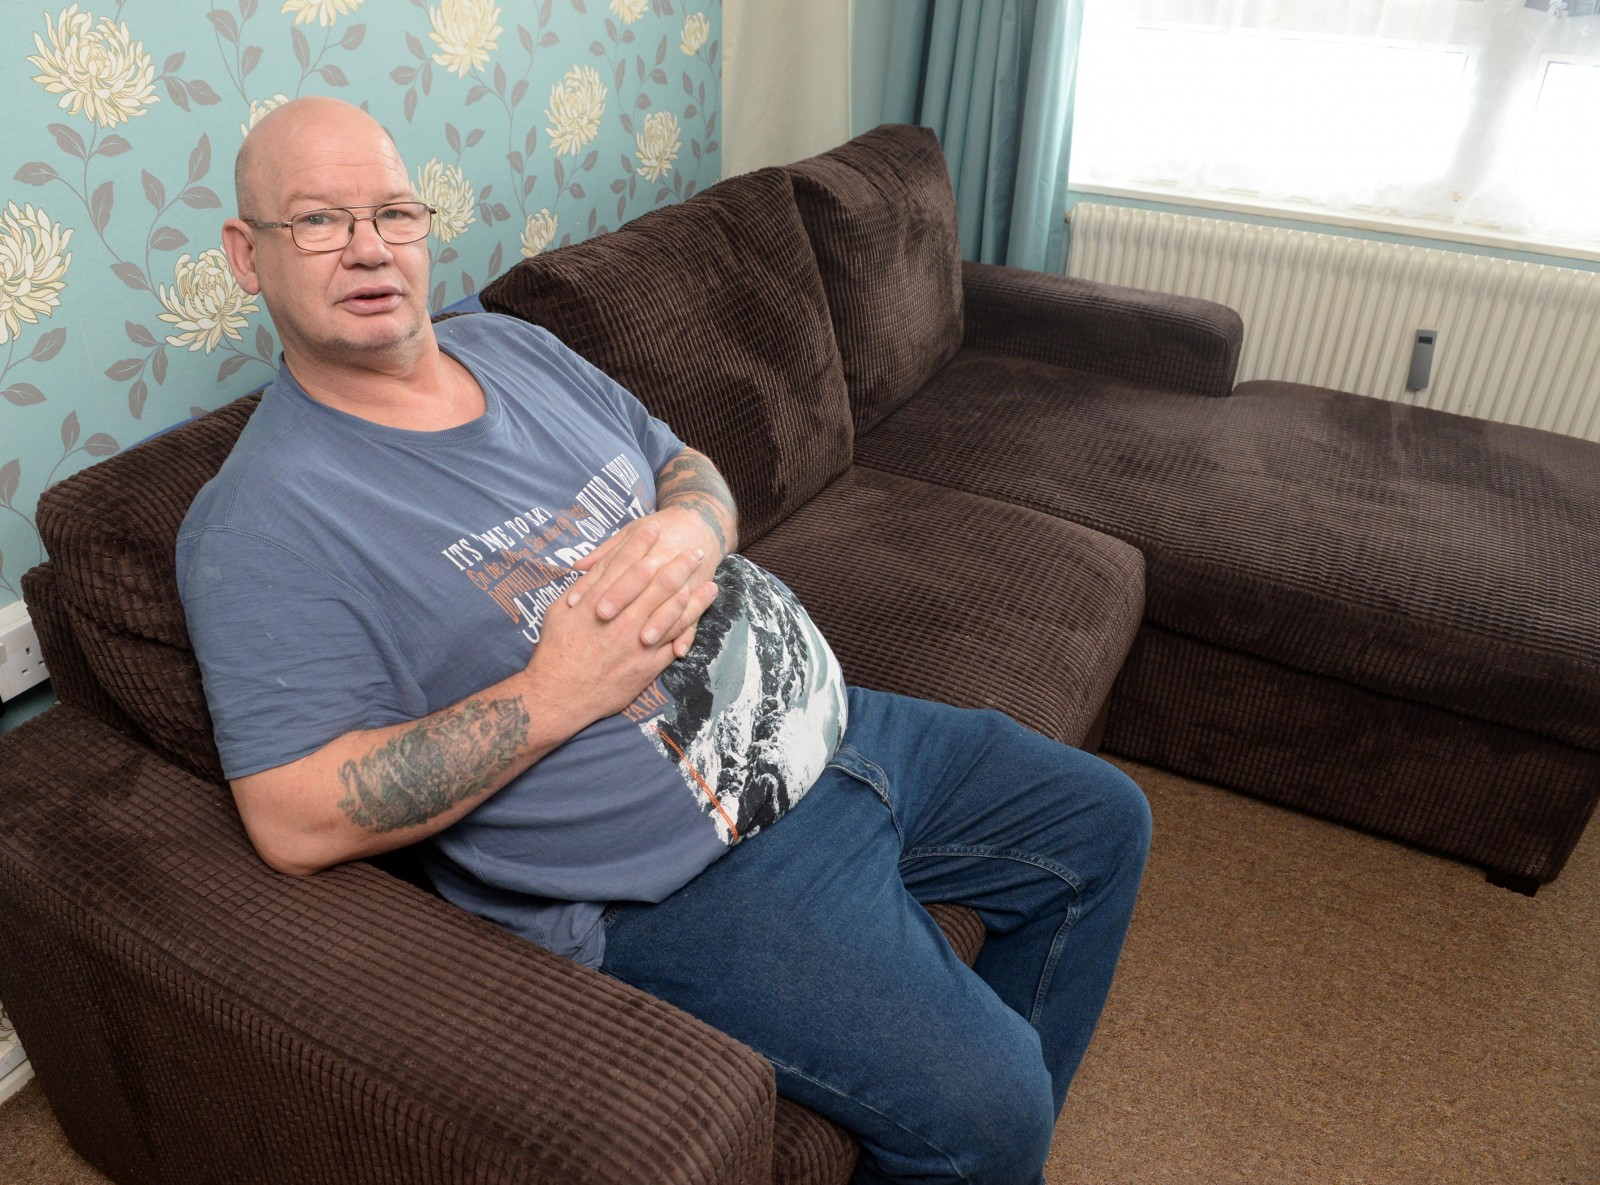 20 stone man claims he was told new sofa broke because he was 'too FAT'